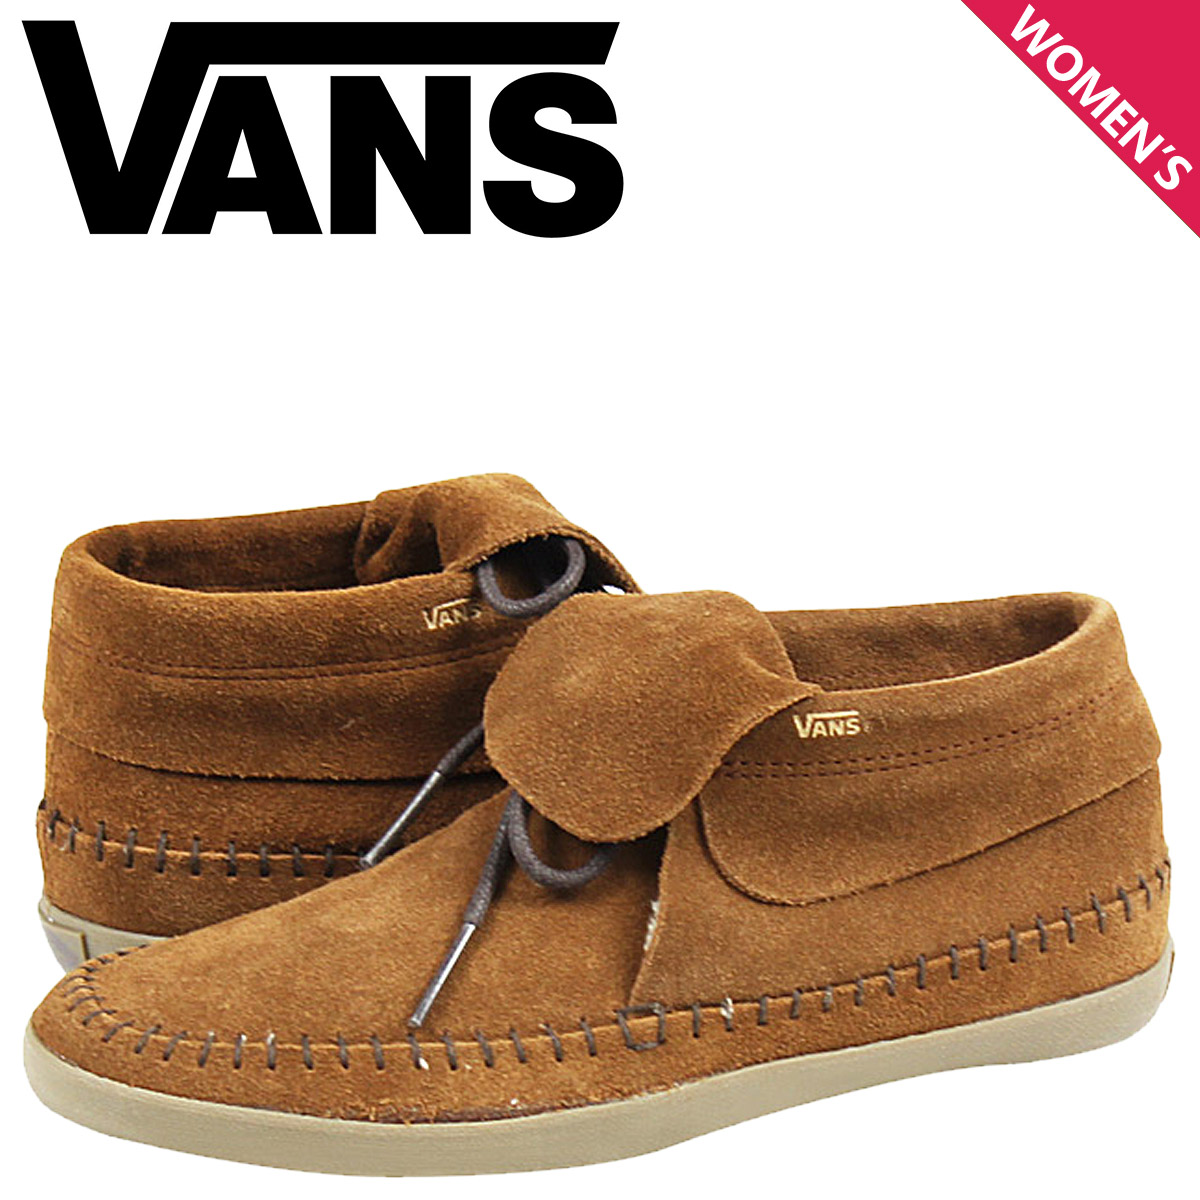 Whats up Sports   SOLD OUT  VANS vans sneakers women s MOHICAN VN-0QGD1CK  shoes Brown  195017f8a